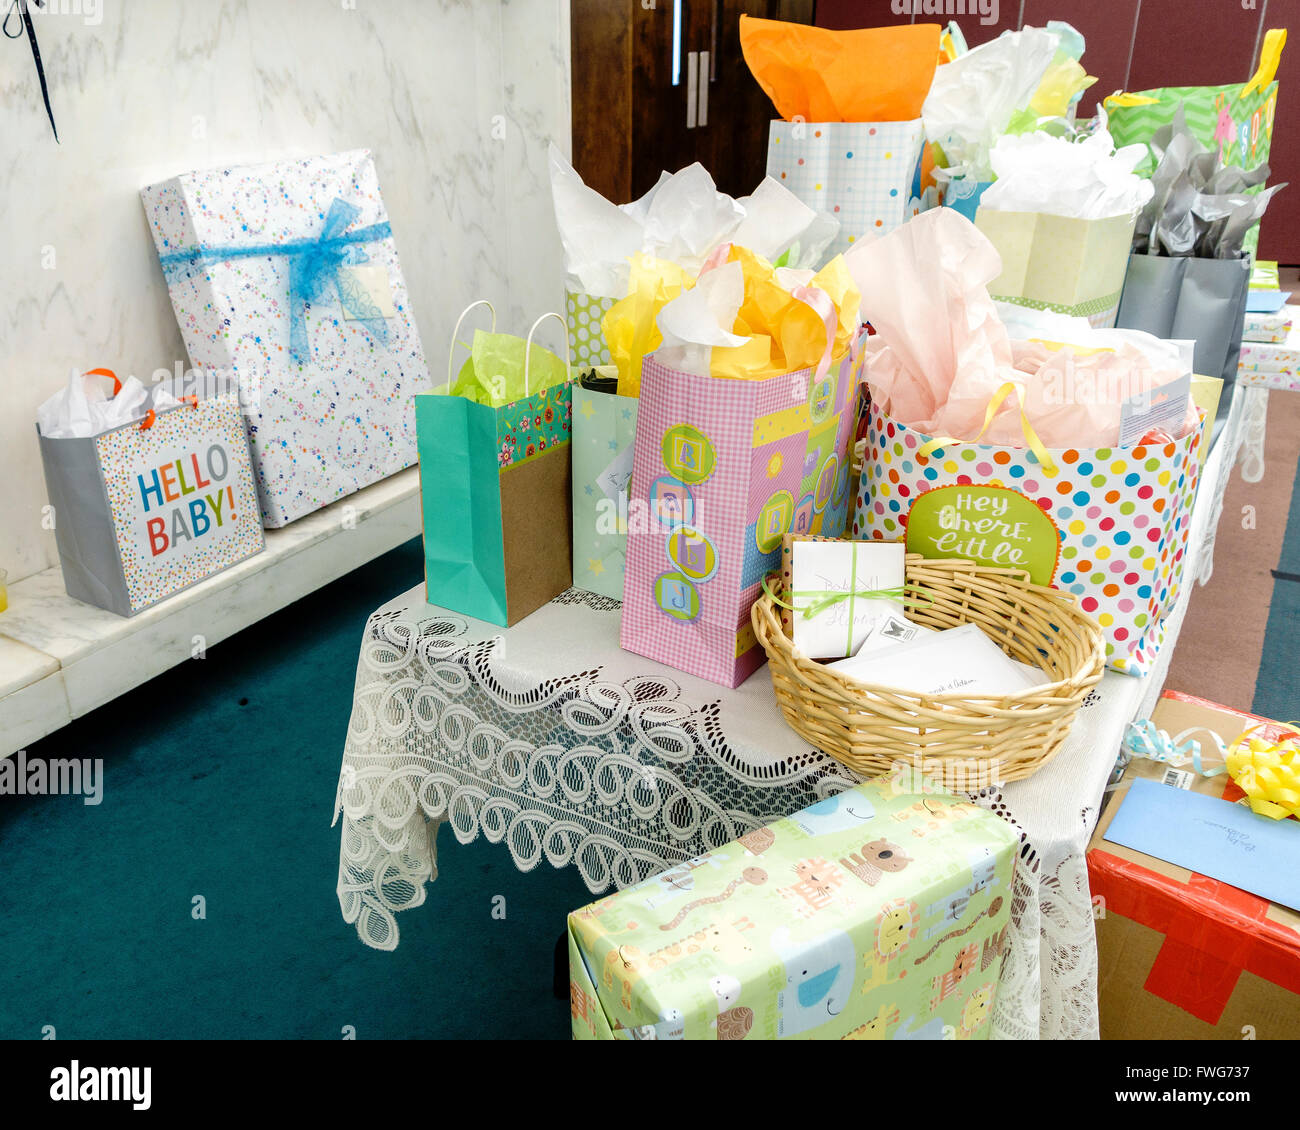 A Baby Shower Gift Table With Colorful Packages And A Lace Tablecloth. USA